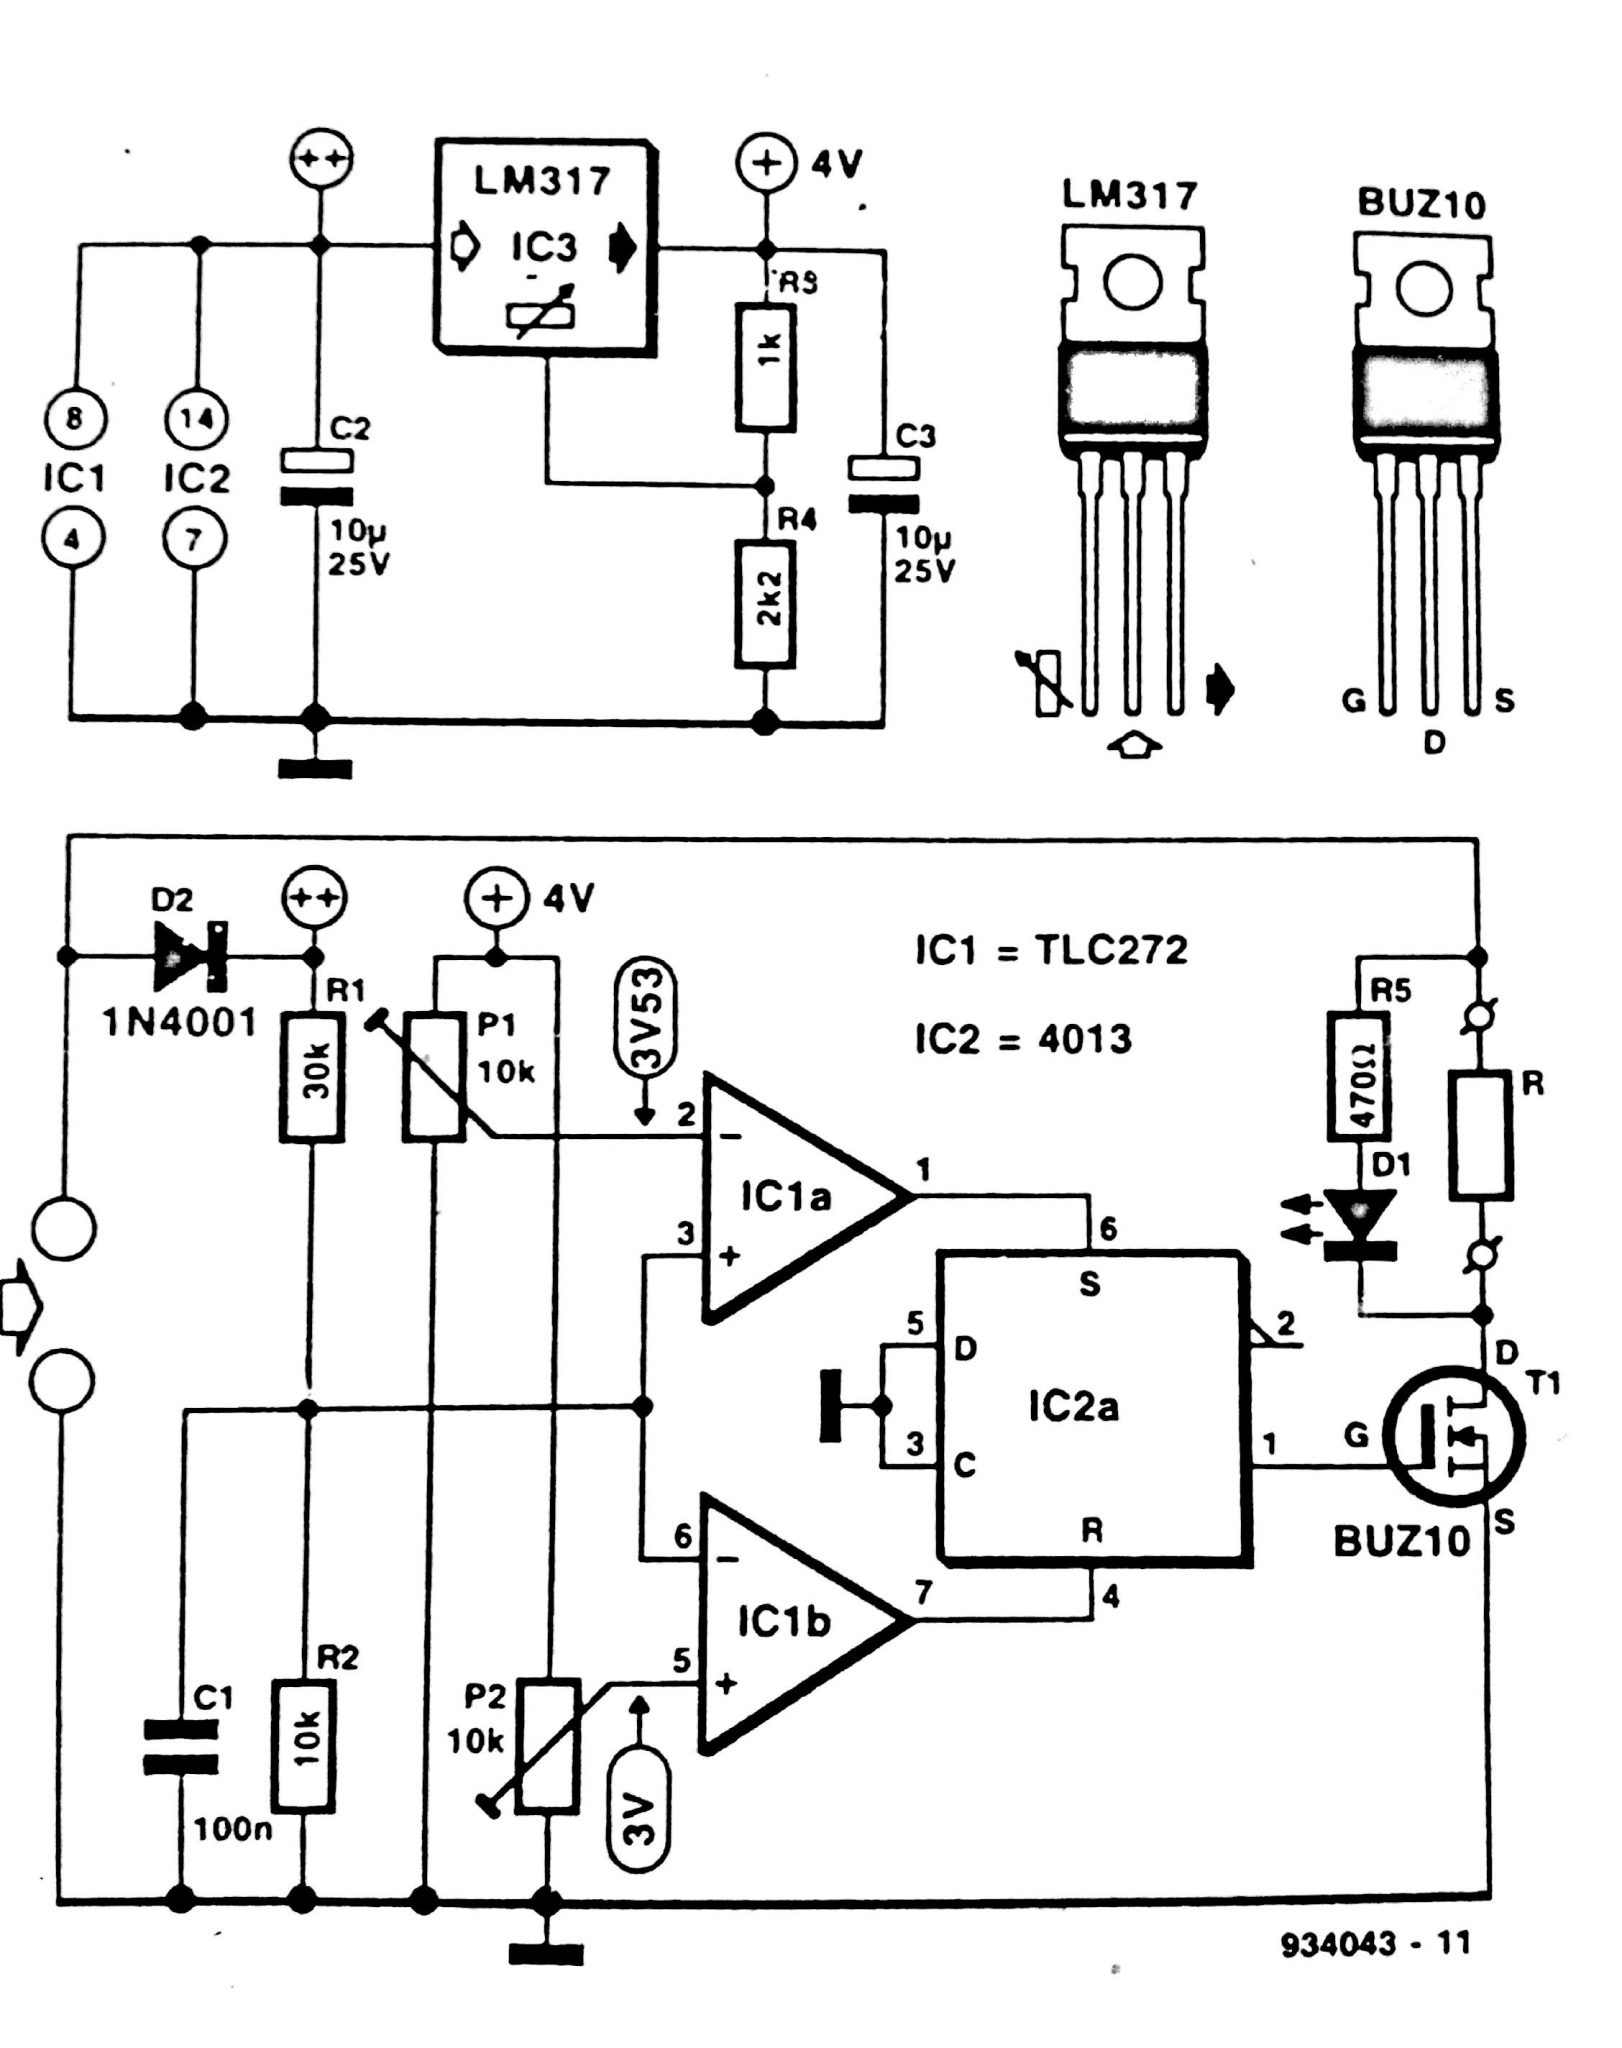 Wiring Diagrams For Solar Circuits System Diagram On Electrical Breaker Box Panel Shunt Regulator Circuit Basic